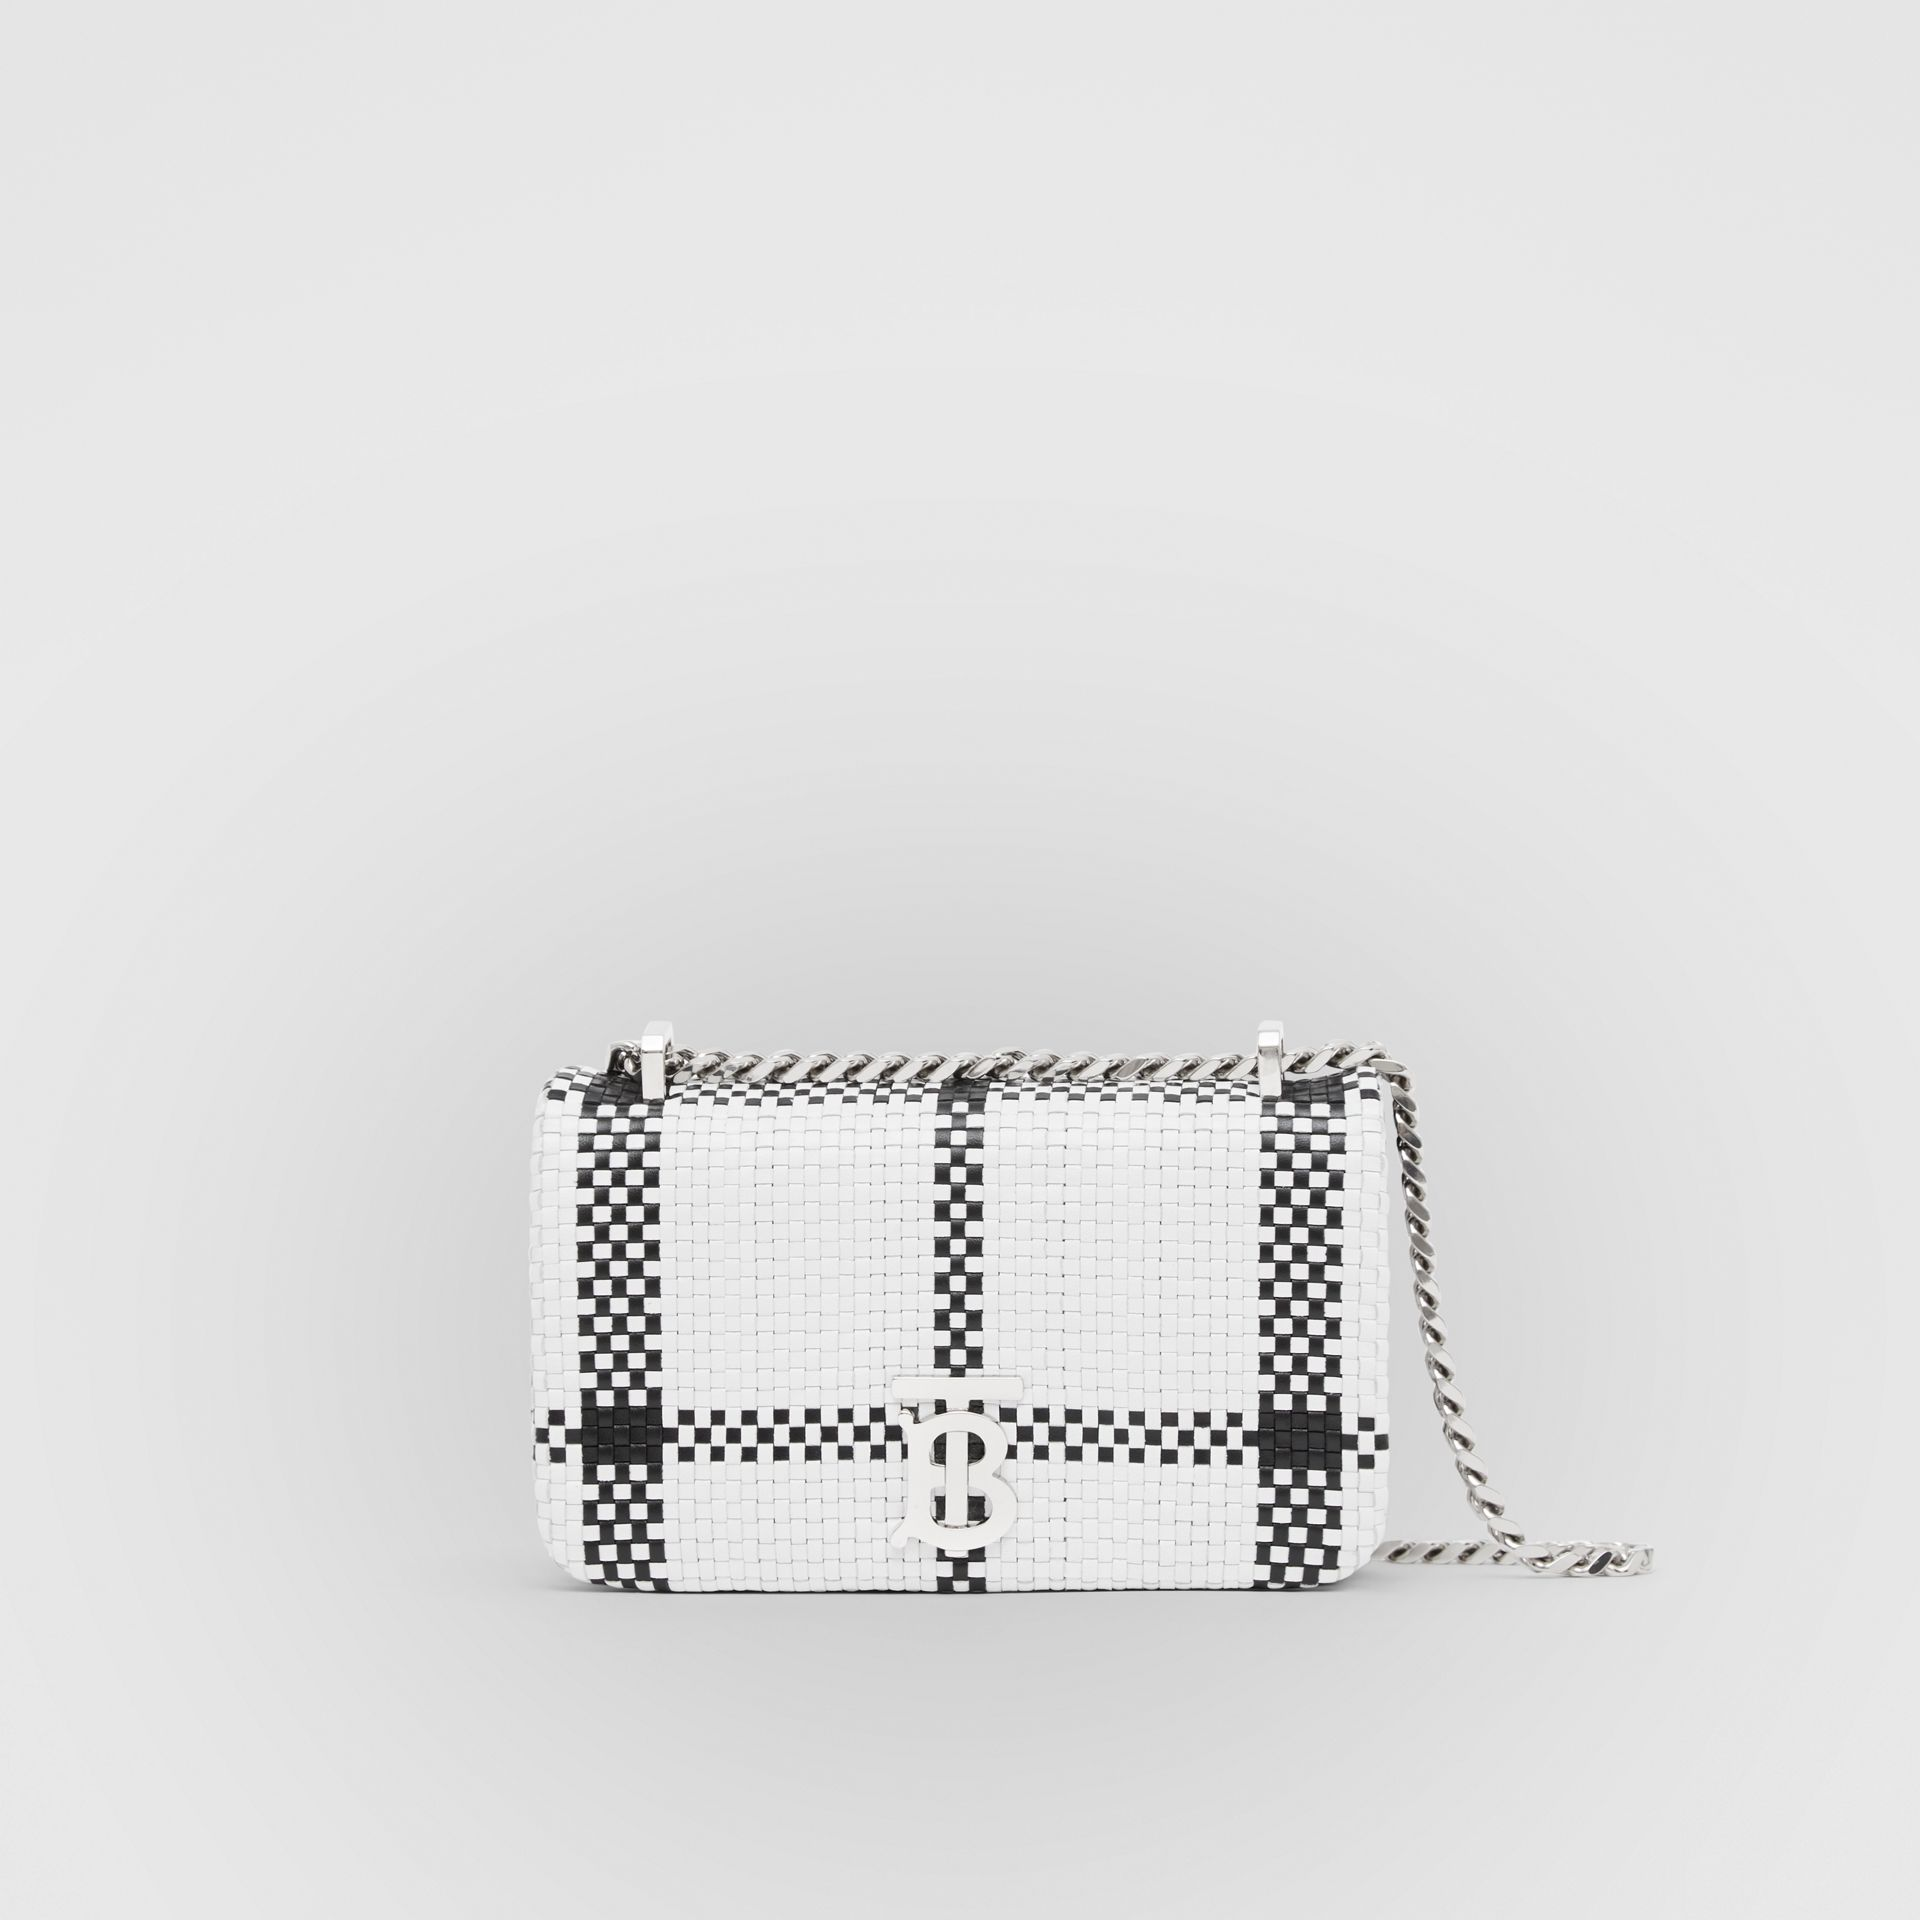 Mini Latticed Leather Lola Bag in Black/white - Women | Burberry - gallery image 0